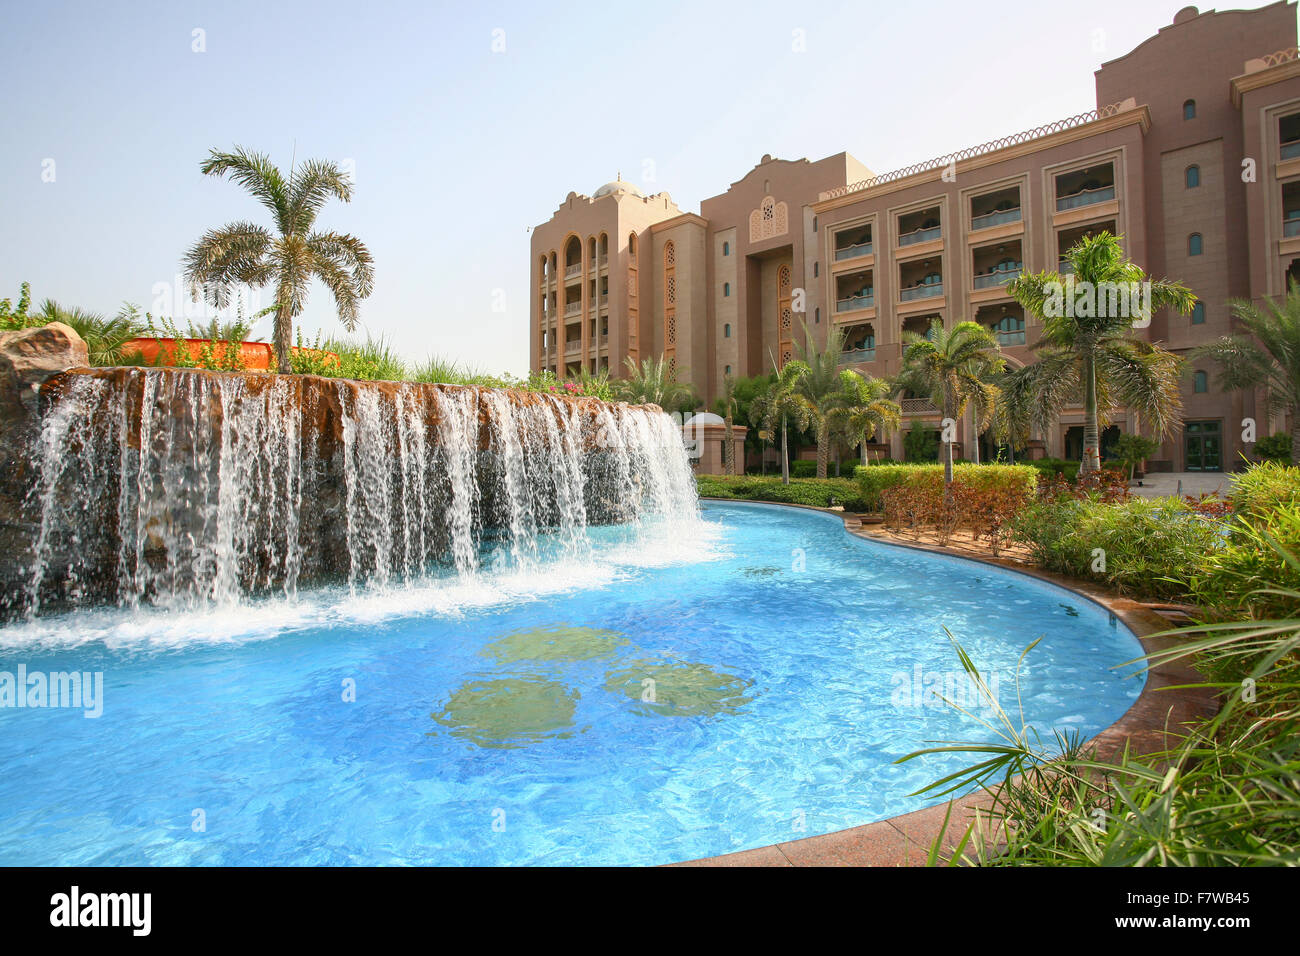 Swimming Pool In Emirates Palace Hotel Abu Dhabi United Arab Stock Photo 90911973 Alamy